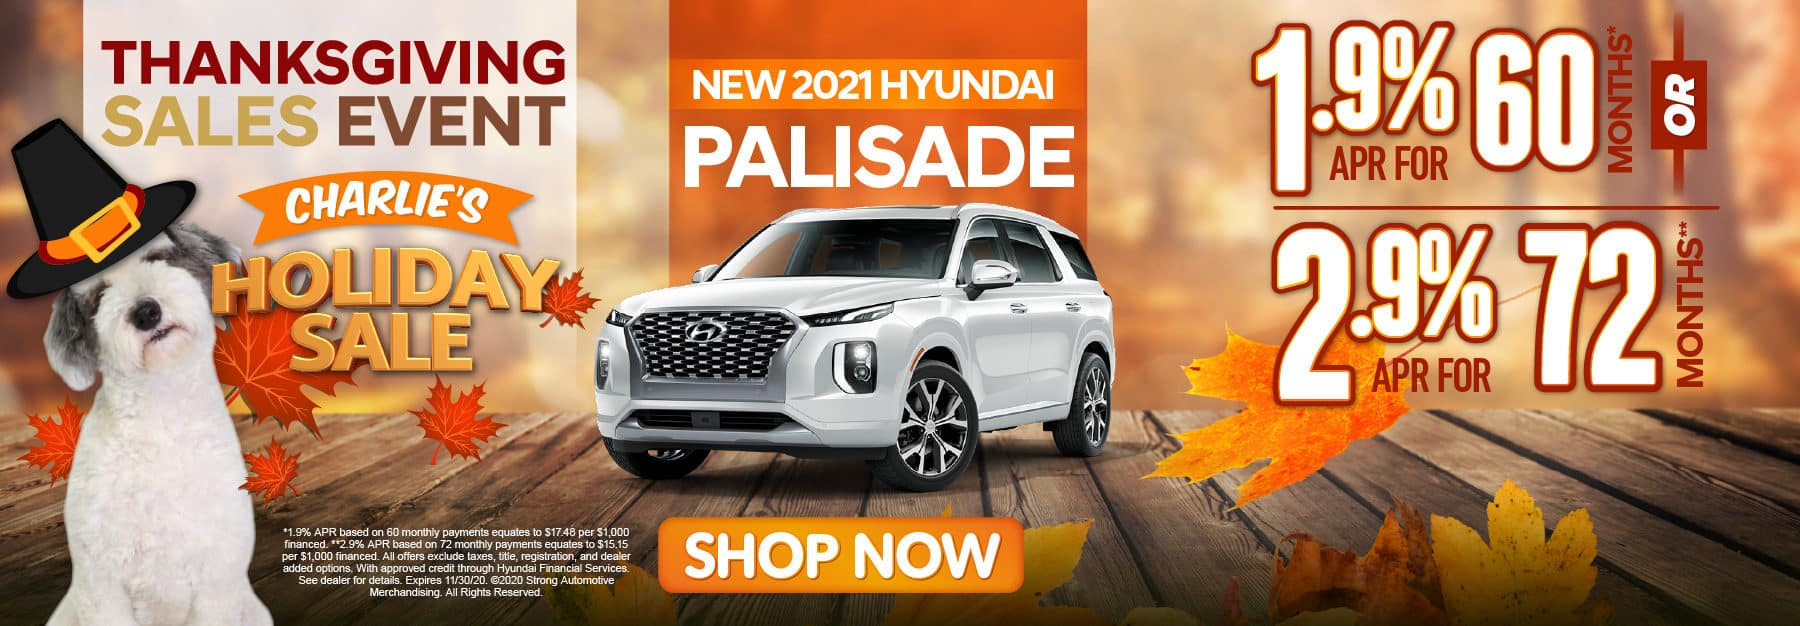 NEW 201 HYUNDAI PALISADE 1.9% APR for 60 months - click here to more information